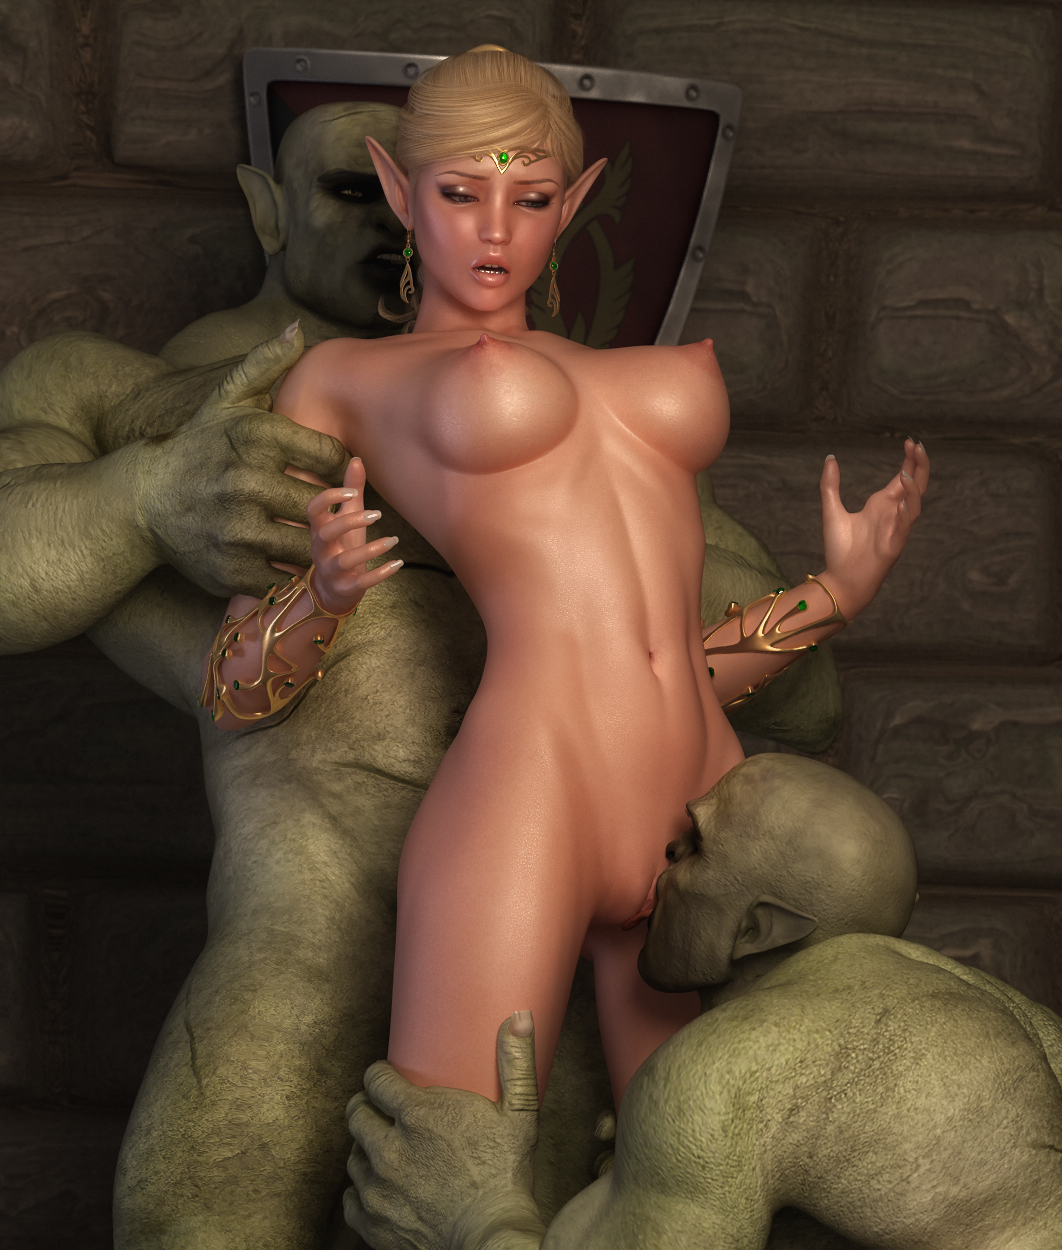 Monster fucks elves sexual pic